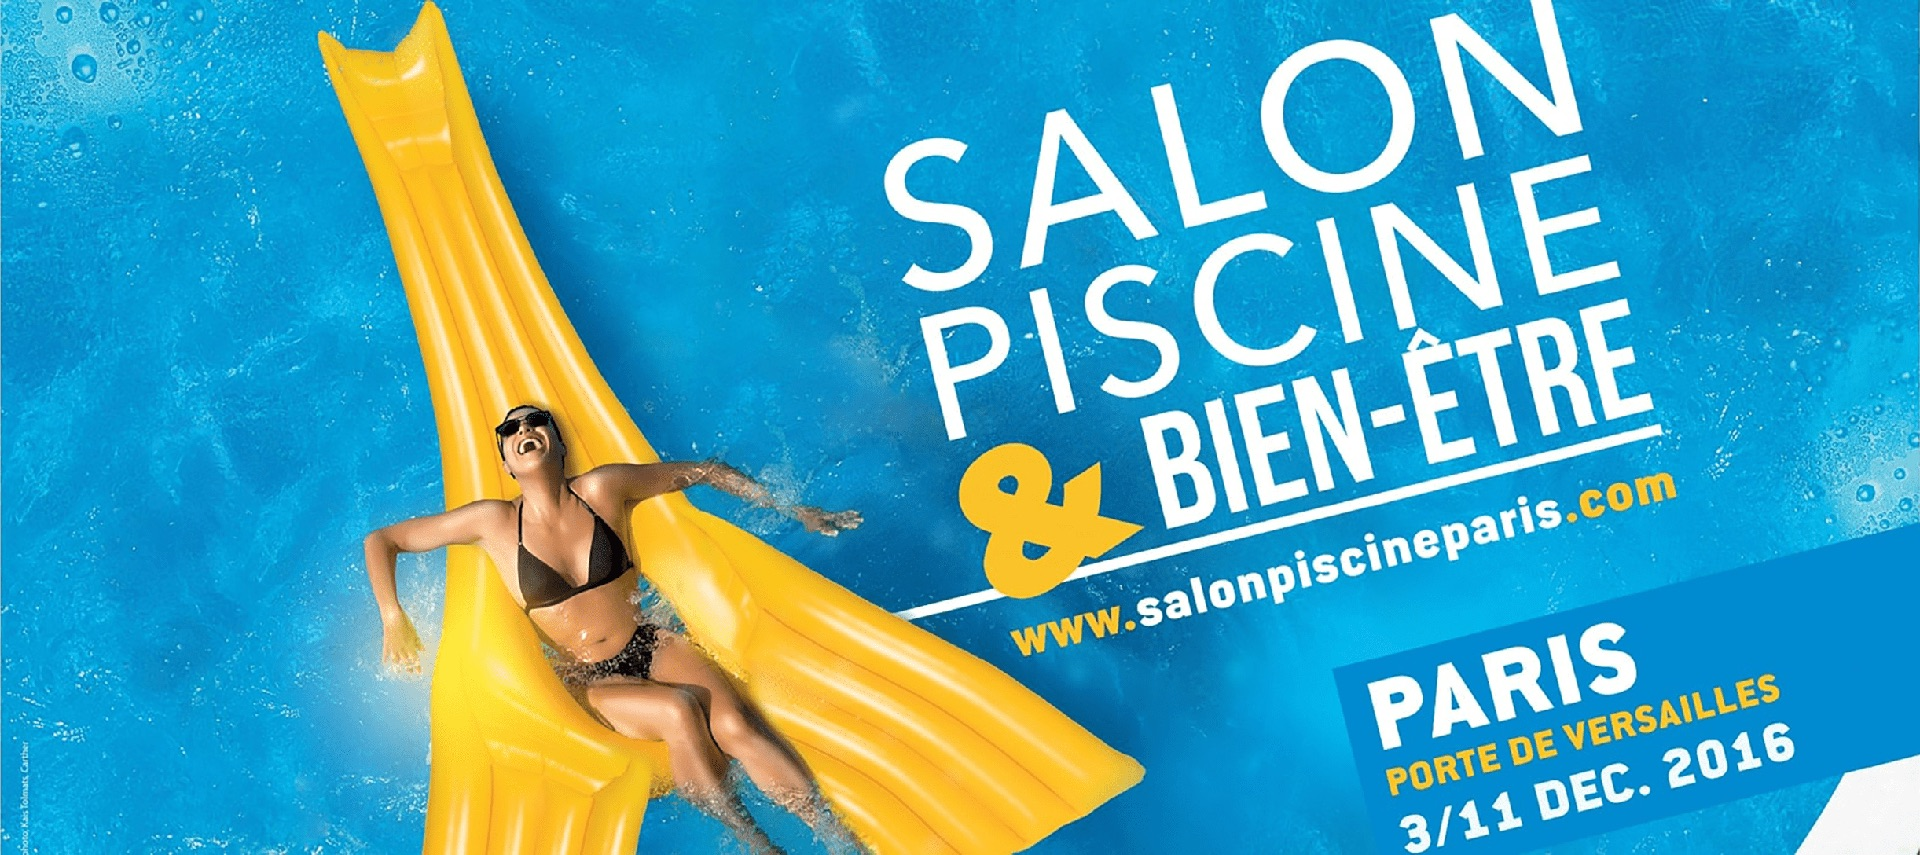 Salon piscine be 2016 id es piscine for Piscine bien etre